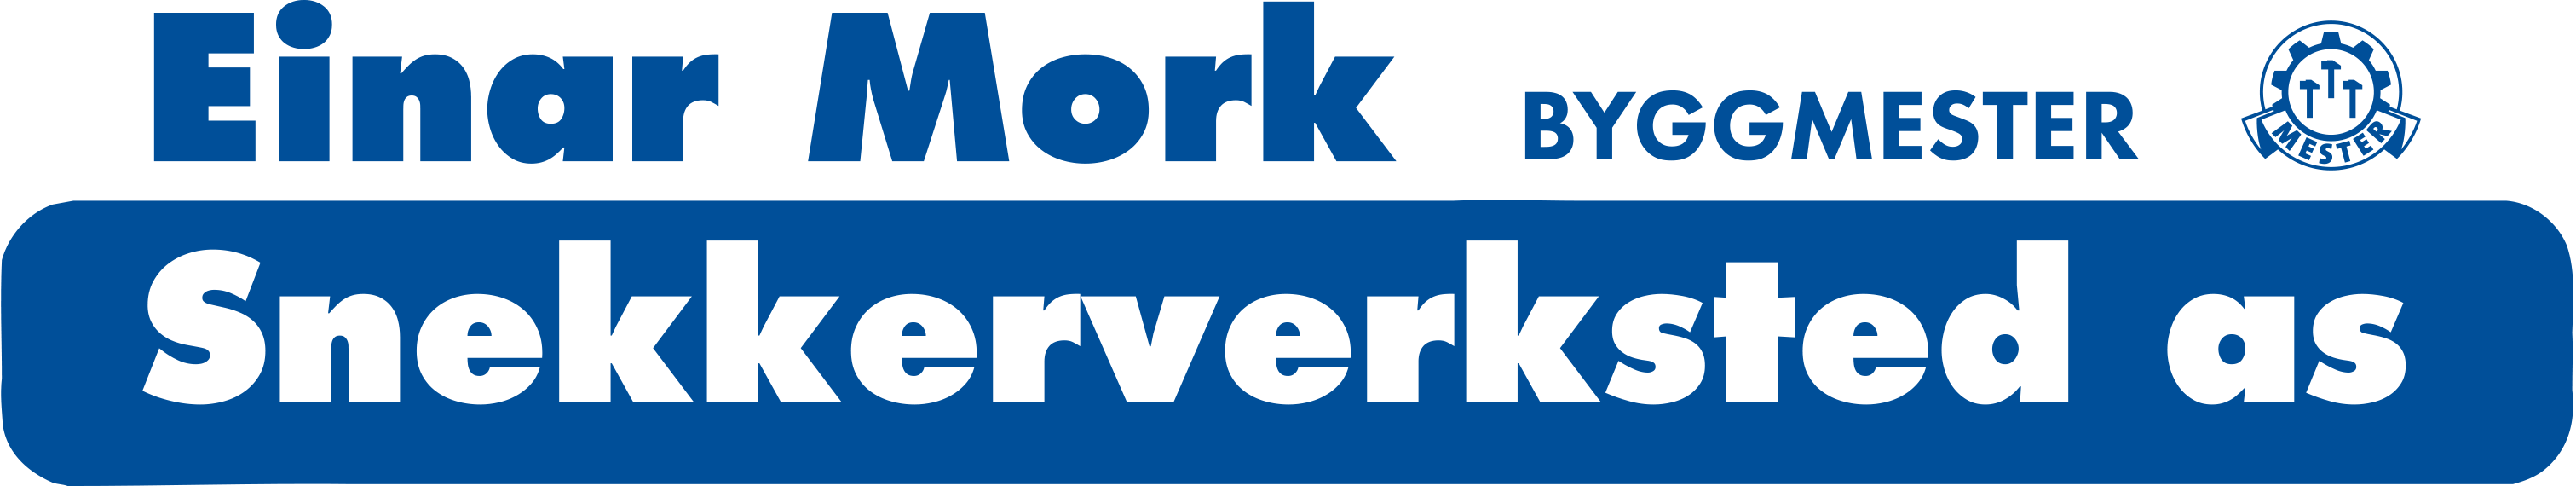 Einar Mork Snekkerverksted AS logo